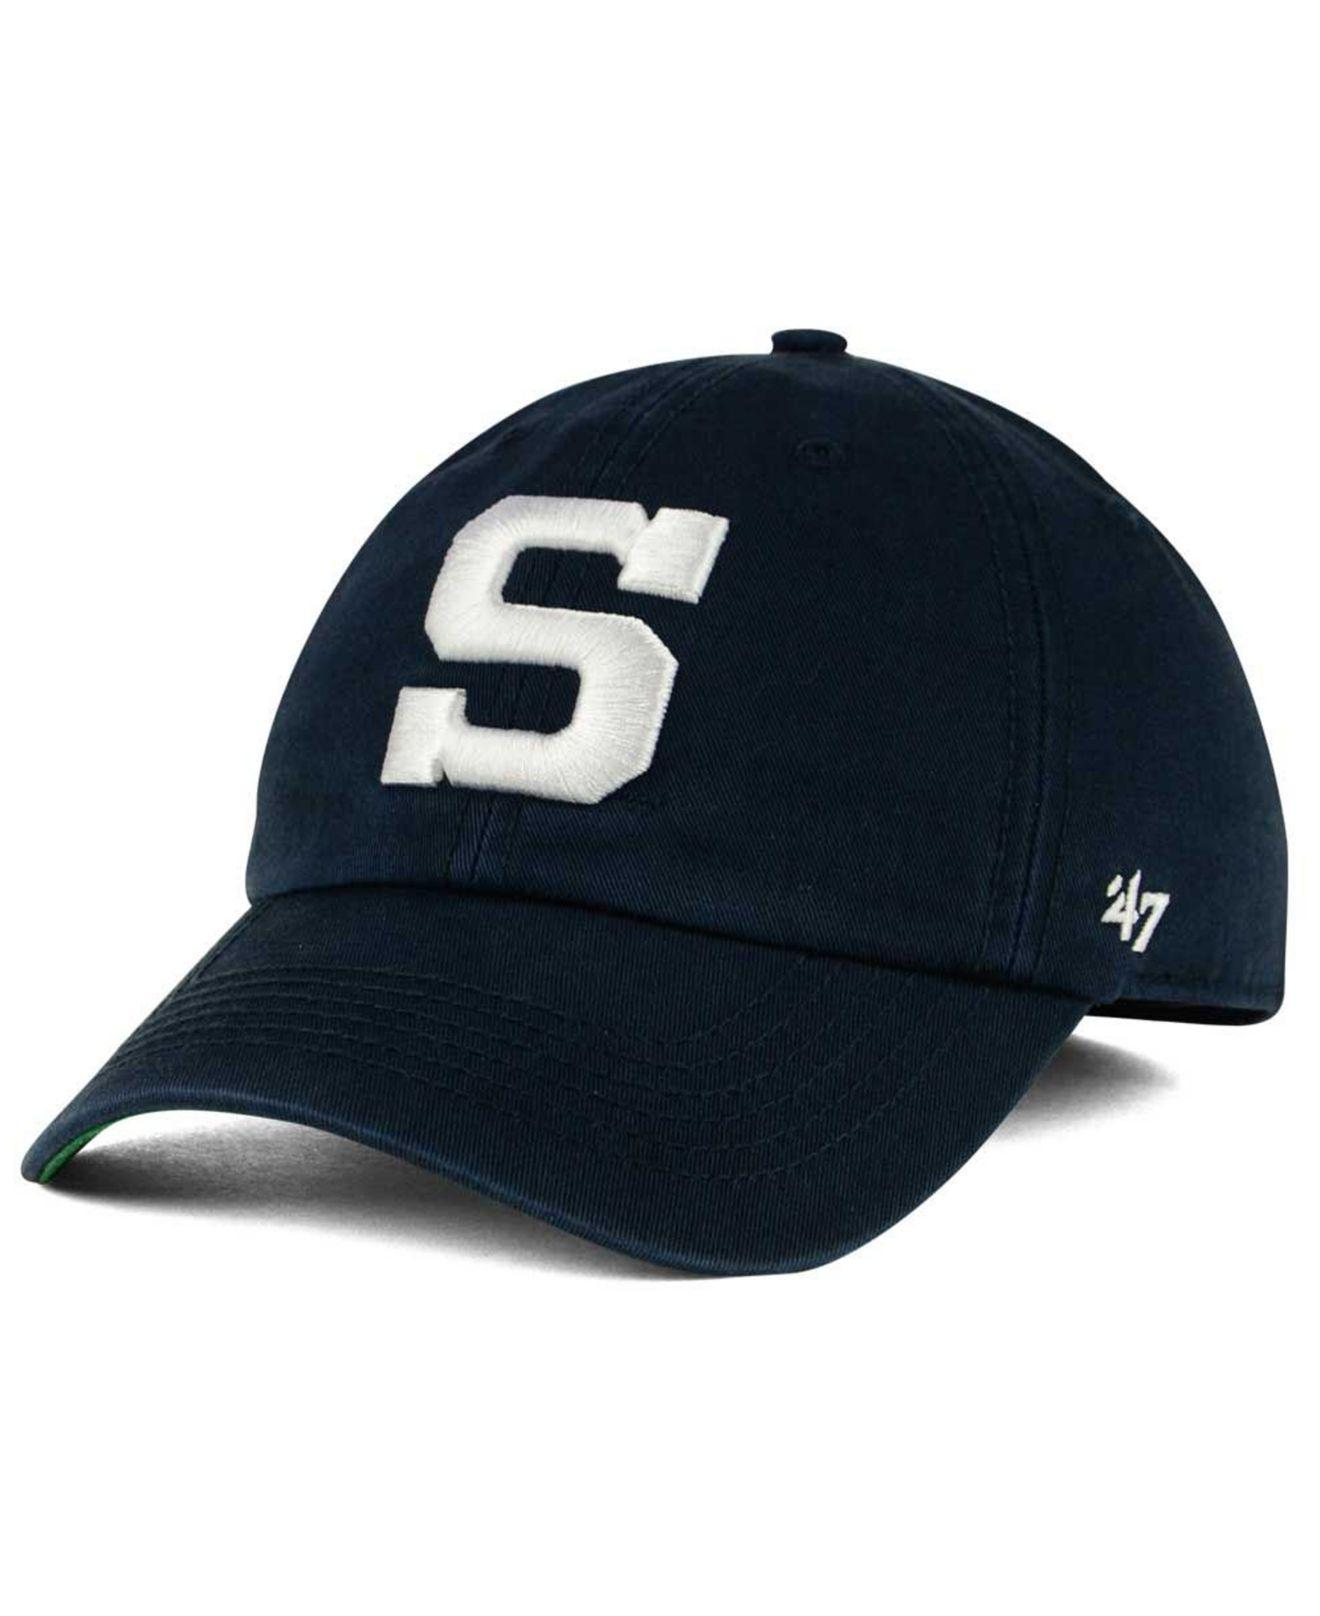 2505e988ab6a8 Lyst - 47 Brand Penn State Nittany Lions Franchise Cap in Blue for Men